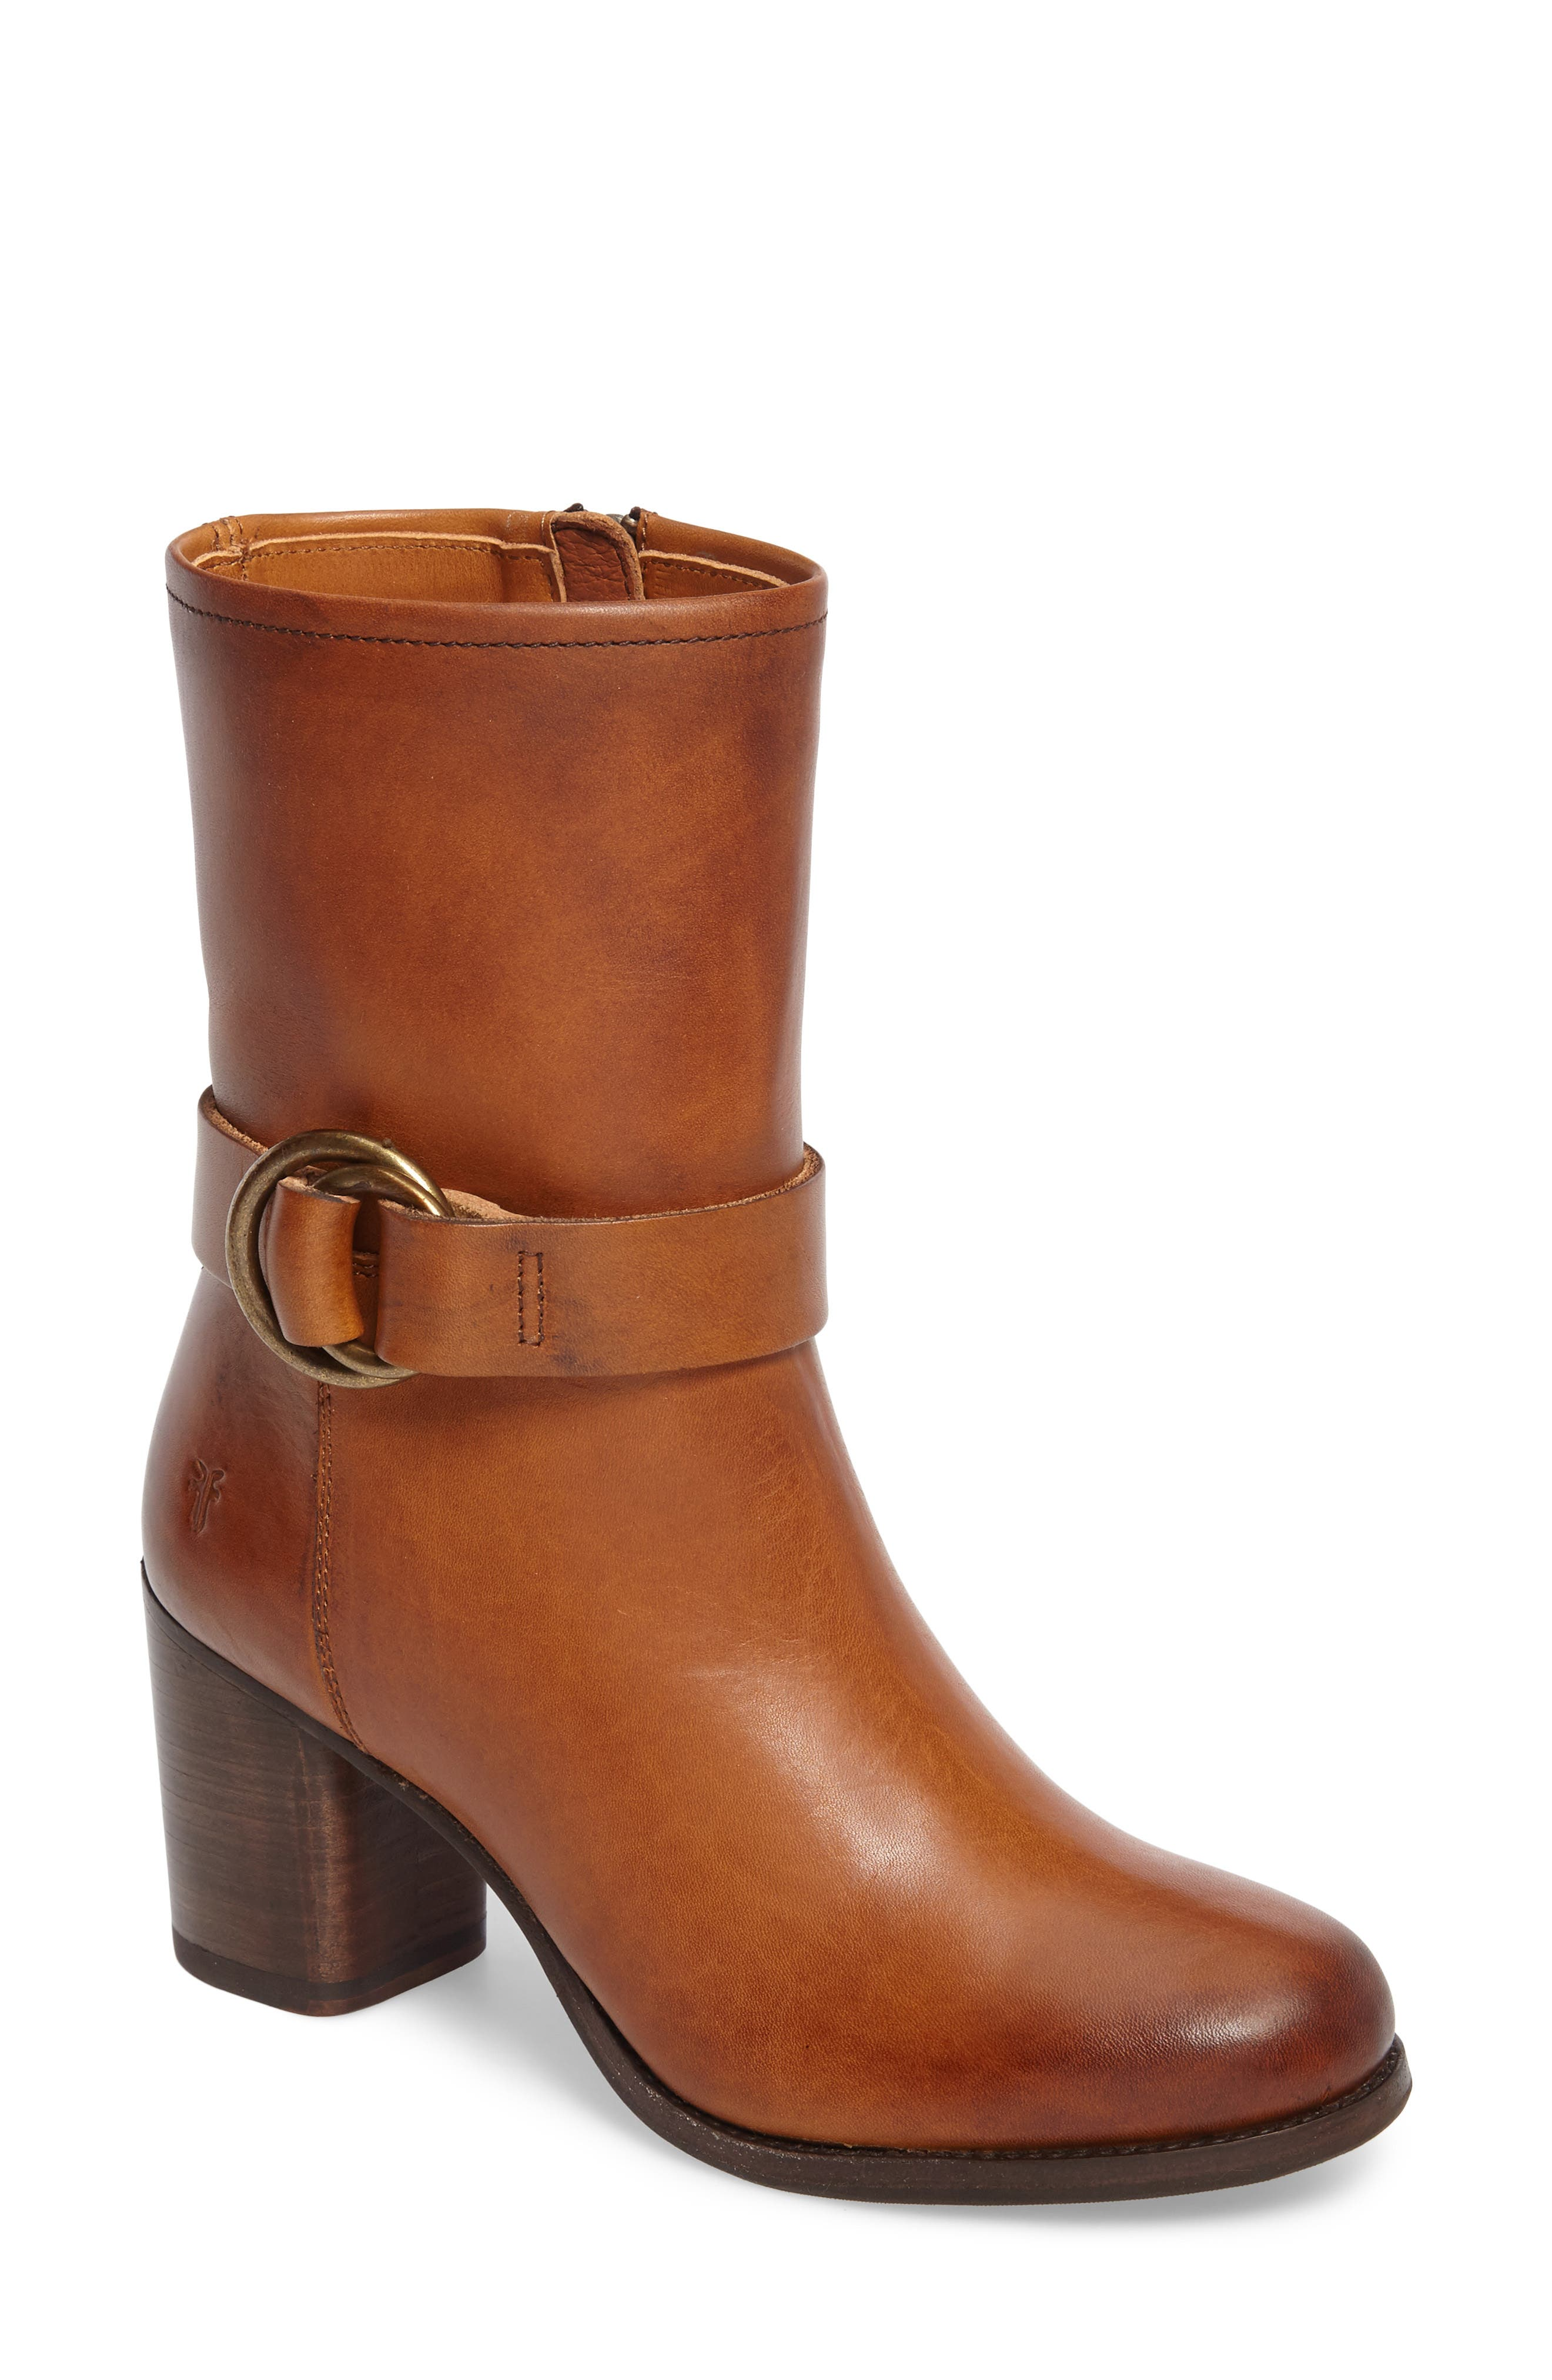 Addie Harness Boot,                         Main,                         color, Brown